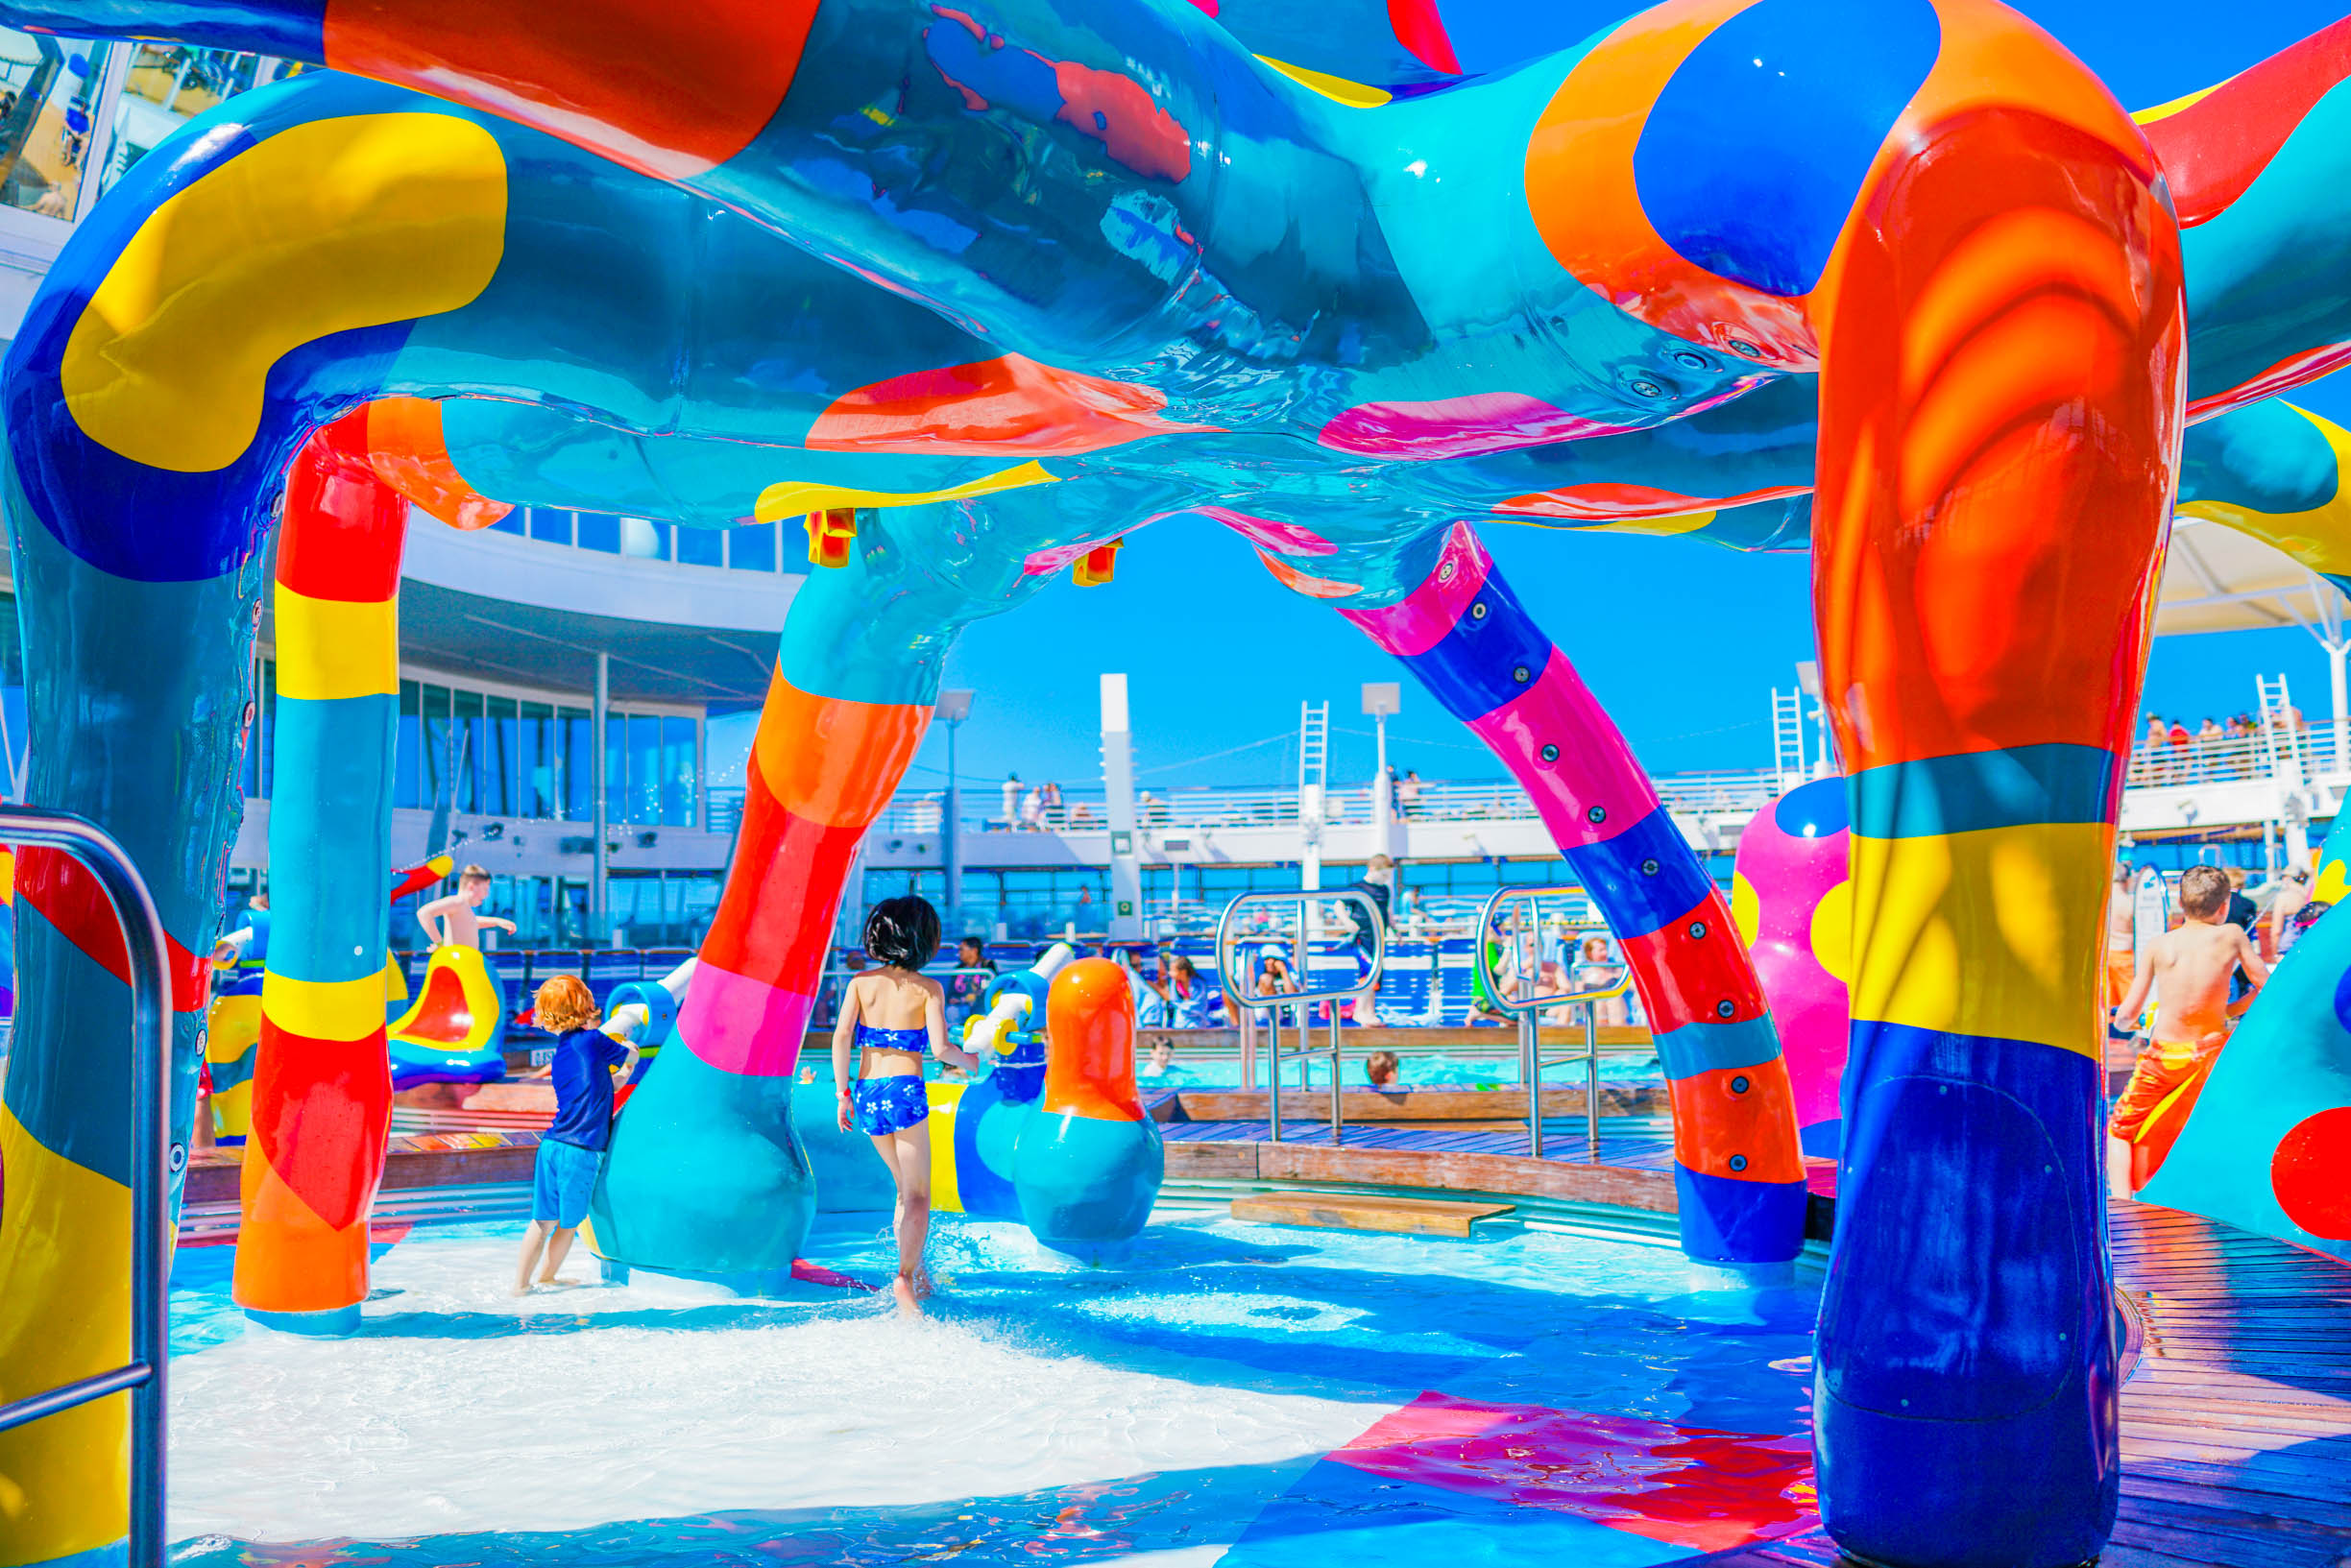 �'Ҽ��ձ����� Royal Caribbean Cruise �������޺� Oasis of the Seas ����+��˹�ᡢ����԰+�����ձ�ȫ��16���������� 2018��2��12�ձ������� �����࿨��ά�����ǵǴ� ���߱��:7718021211